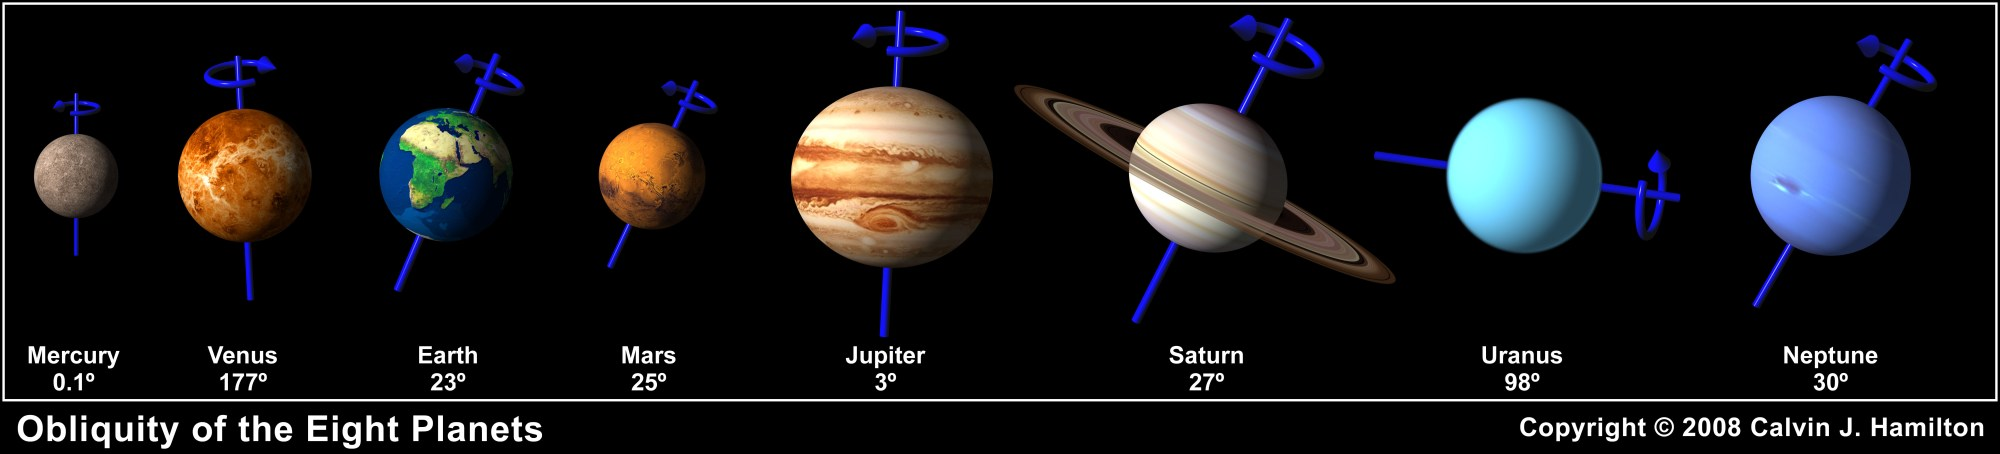 hight resolution of planet obliquity